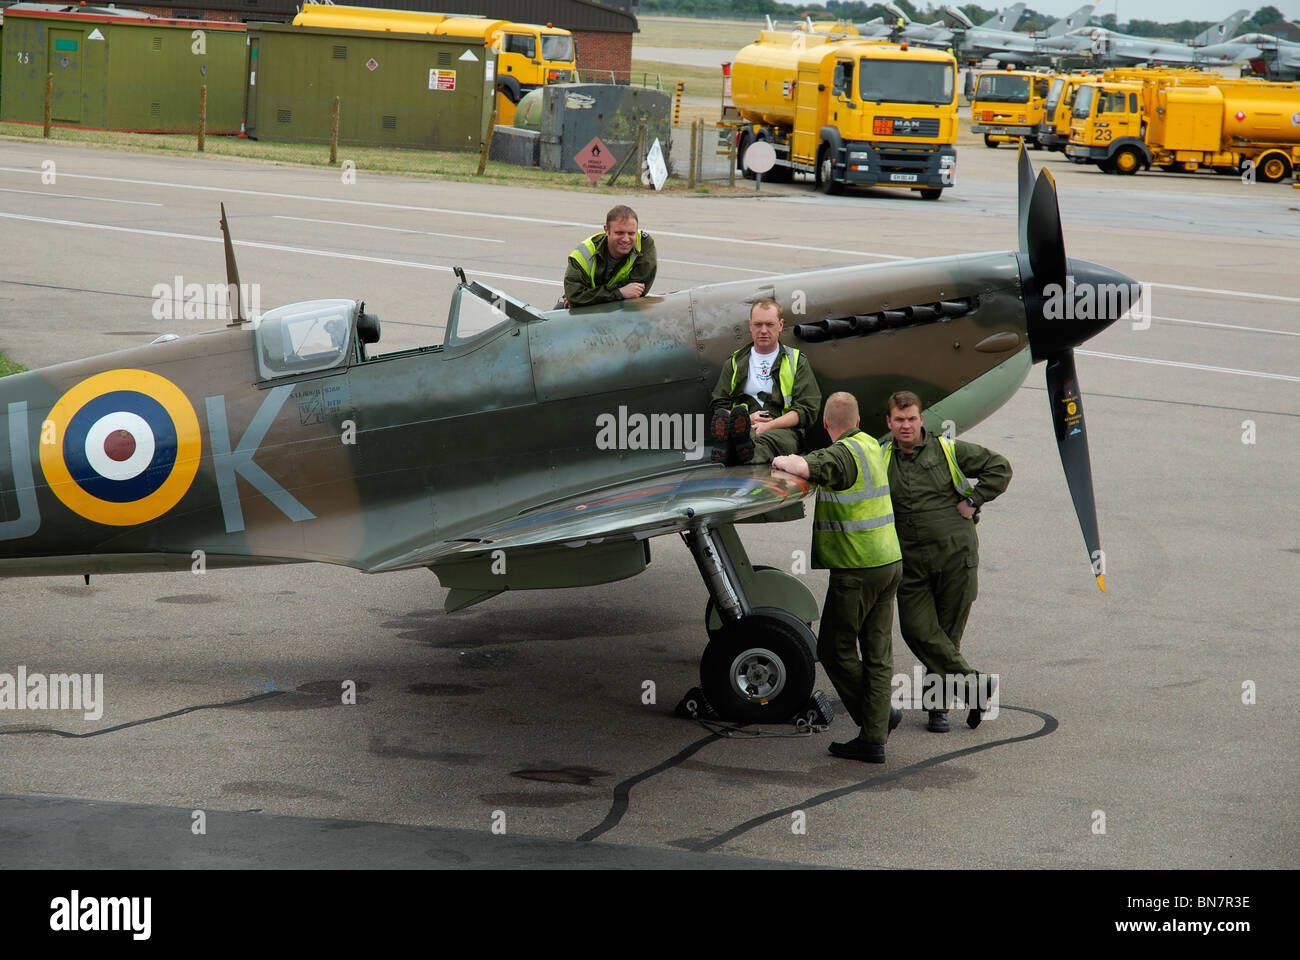 Spitfire and ground crew at Battle of Britain Memorial Flight, Coningsby, UK. - Stock Image